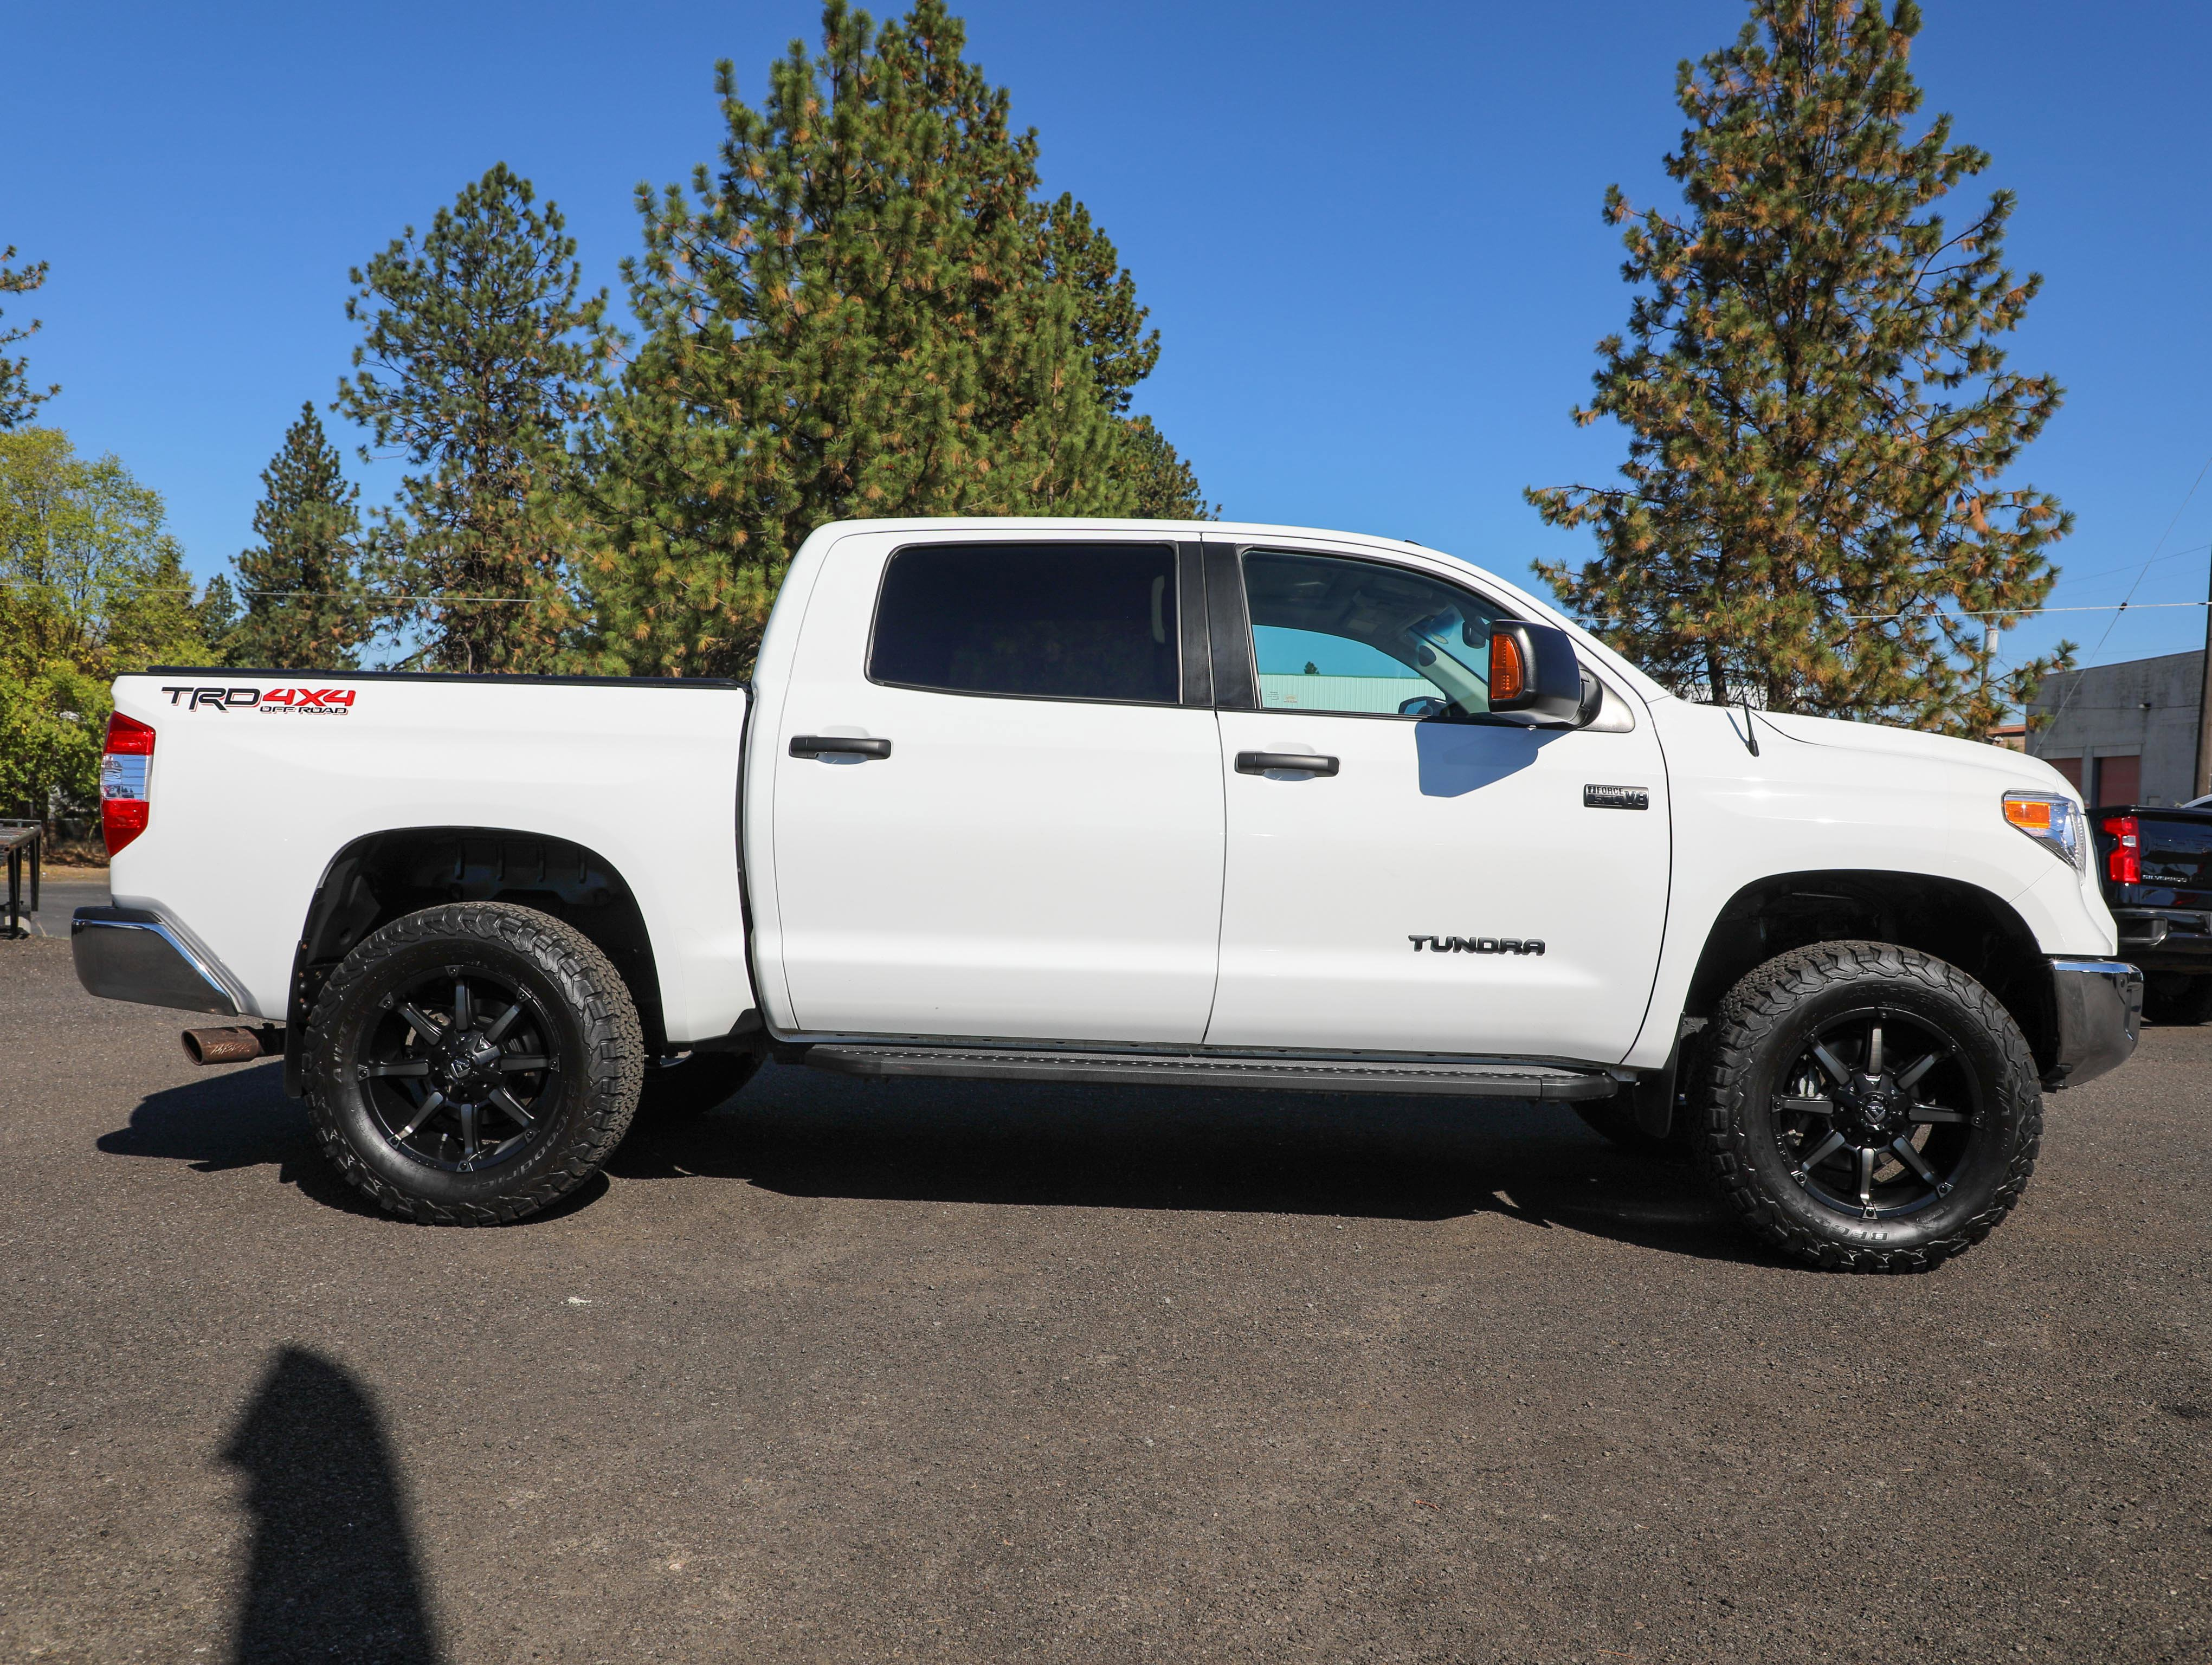 2017 Toyota Tundra 4WD TRD PRO CREWMAX FULLY LOADED